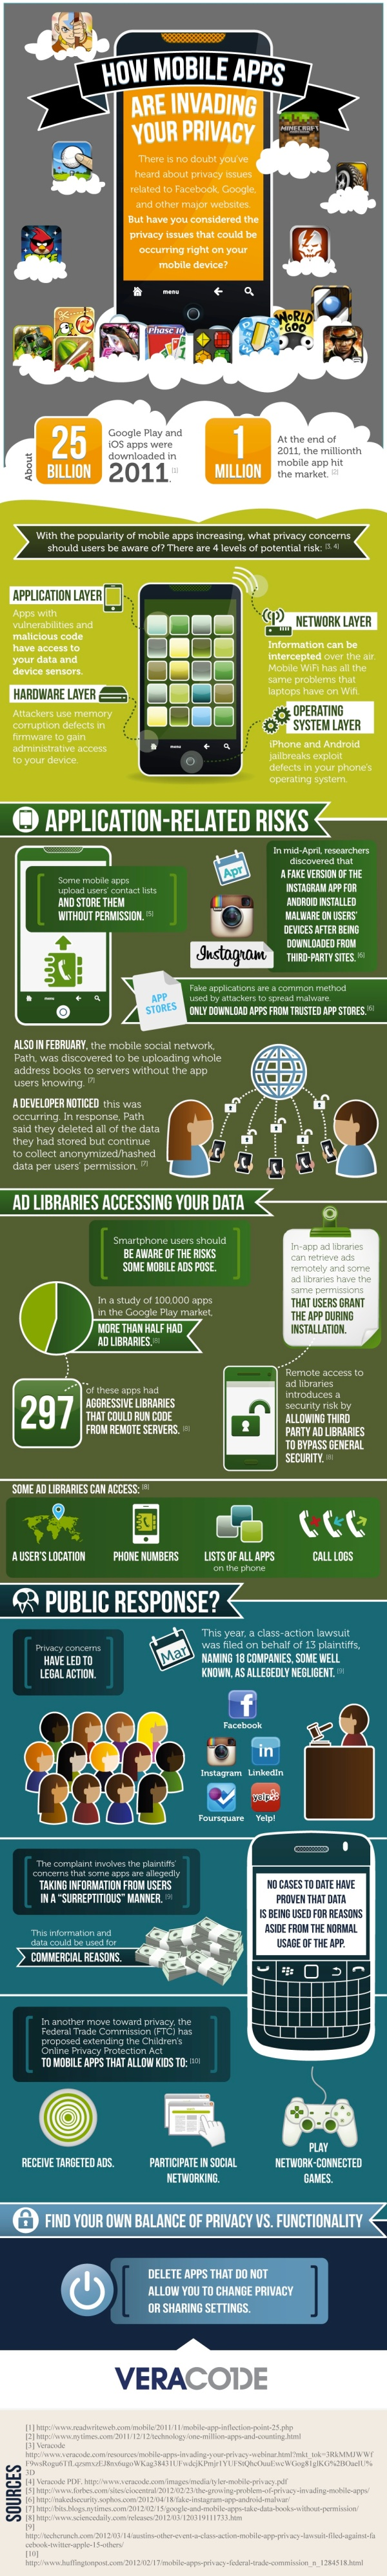 Can Your Mobile Apps Be Trusted? [INFOGRAPHIC]